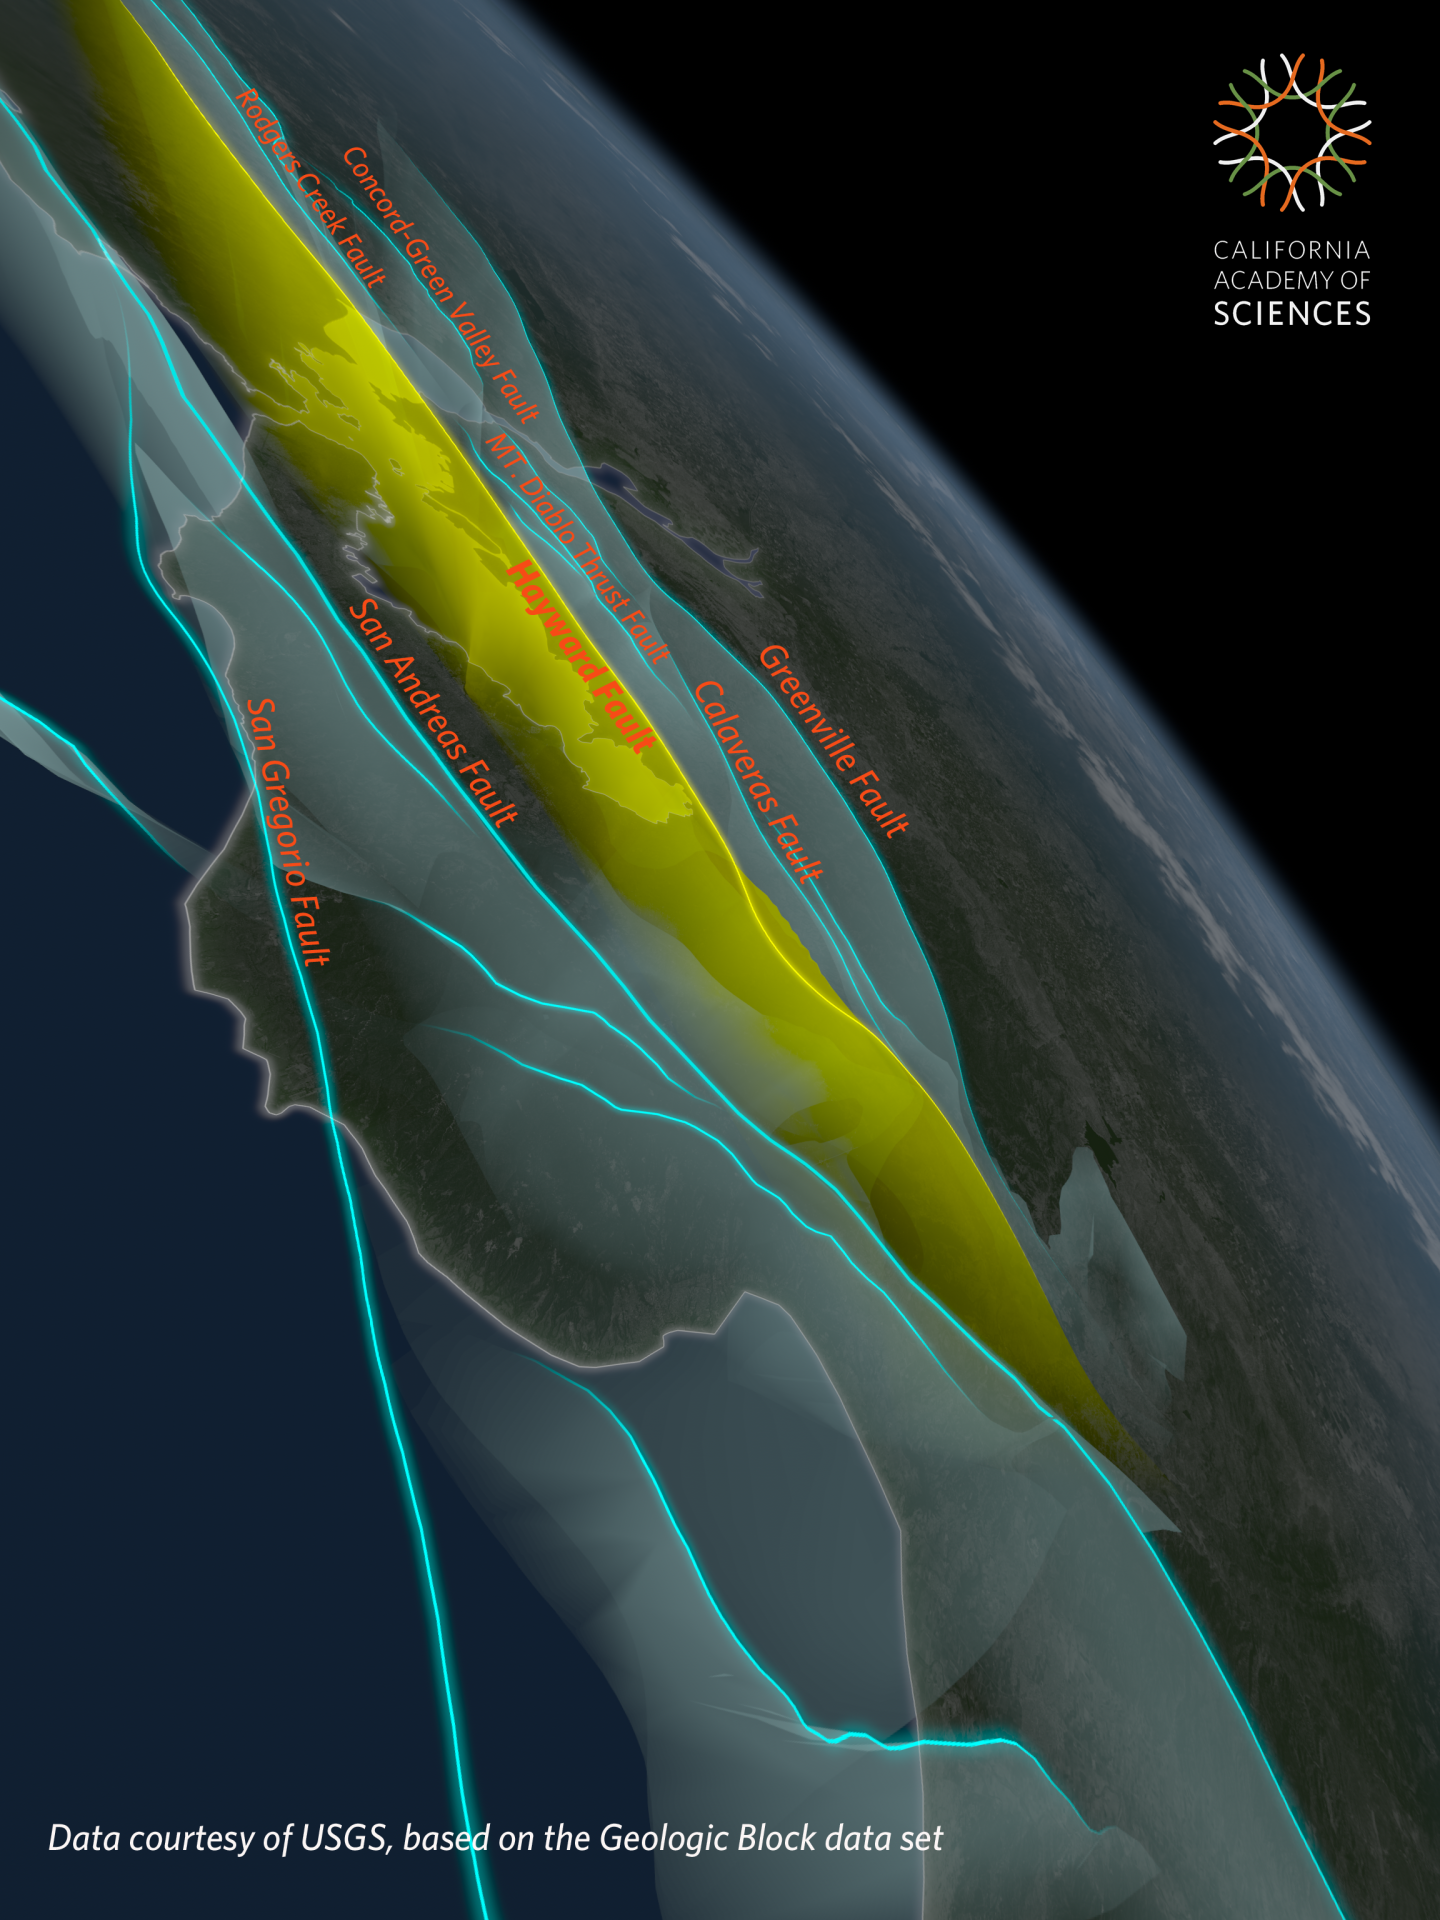 San Francisco Bay Area Earthquakes and Faults